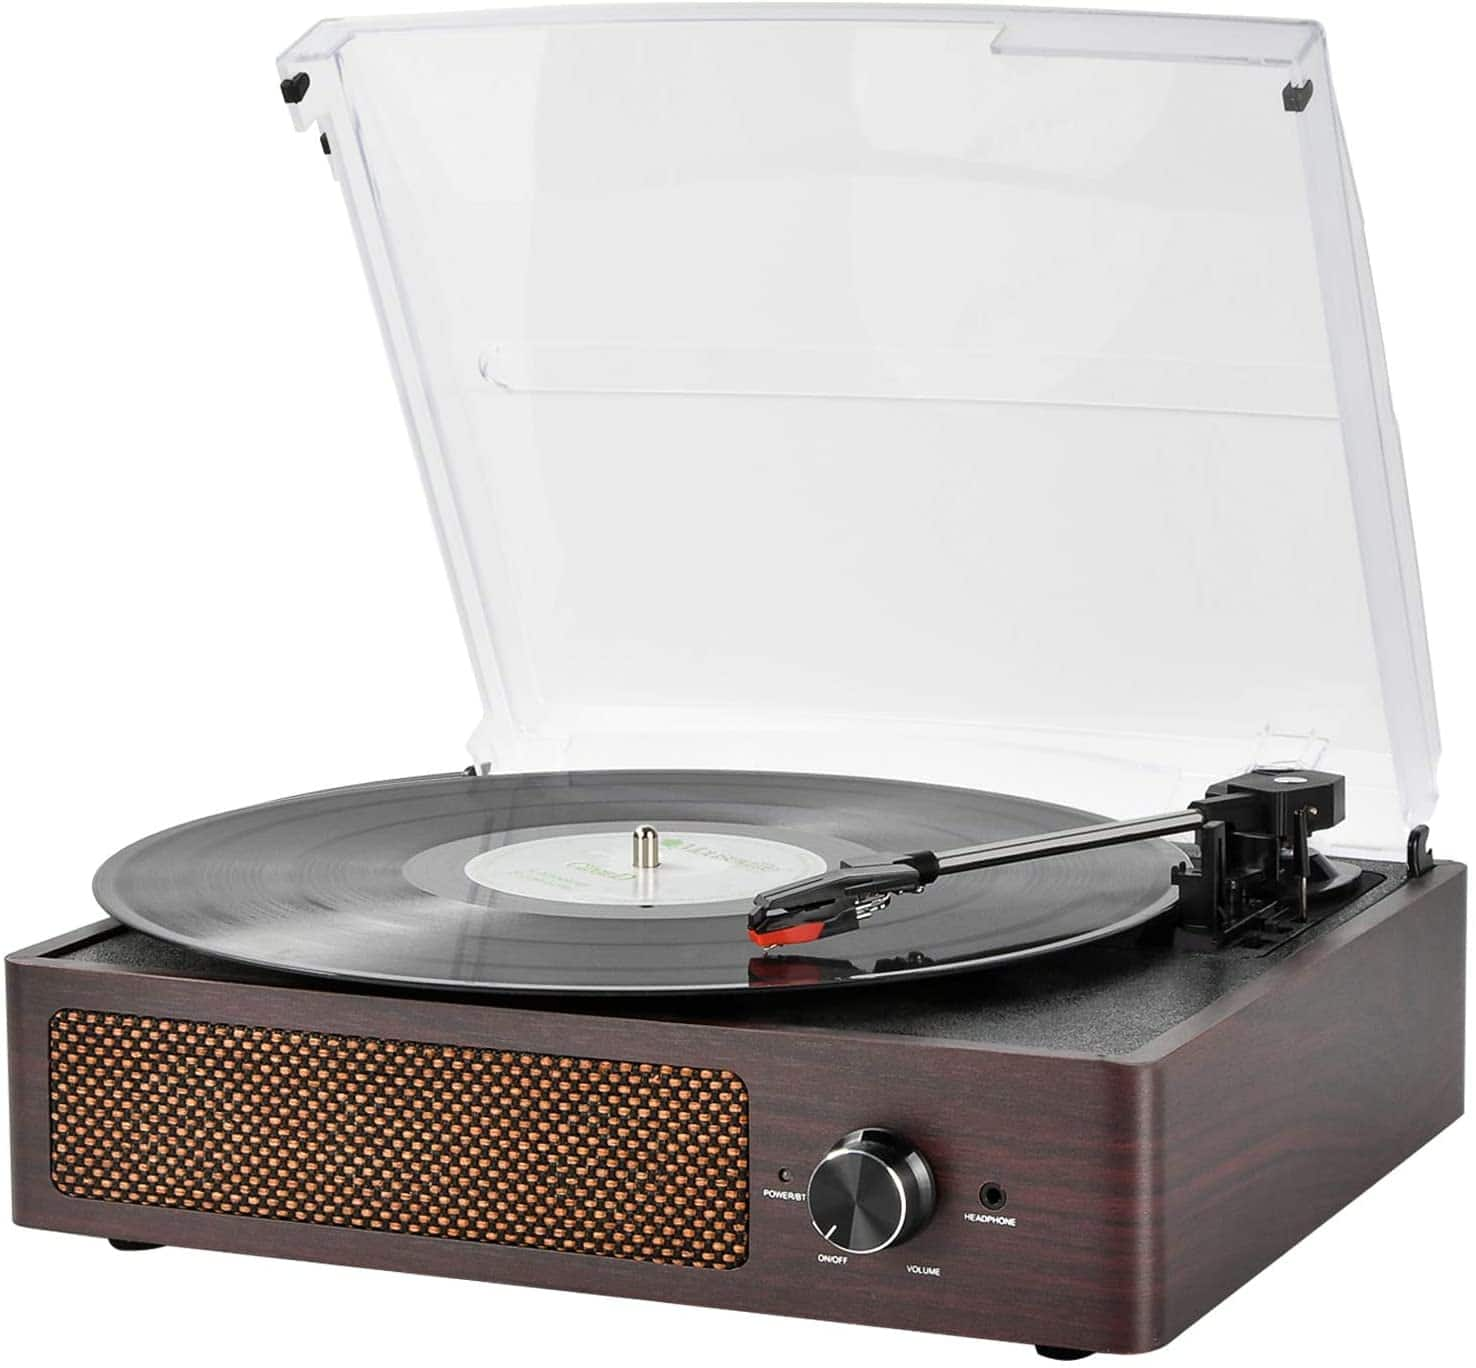 Vintage 3-Speed Bluetooth Turntable with Built-in Stereo Speakers $29.99 + Free Shipping